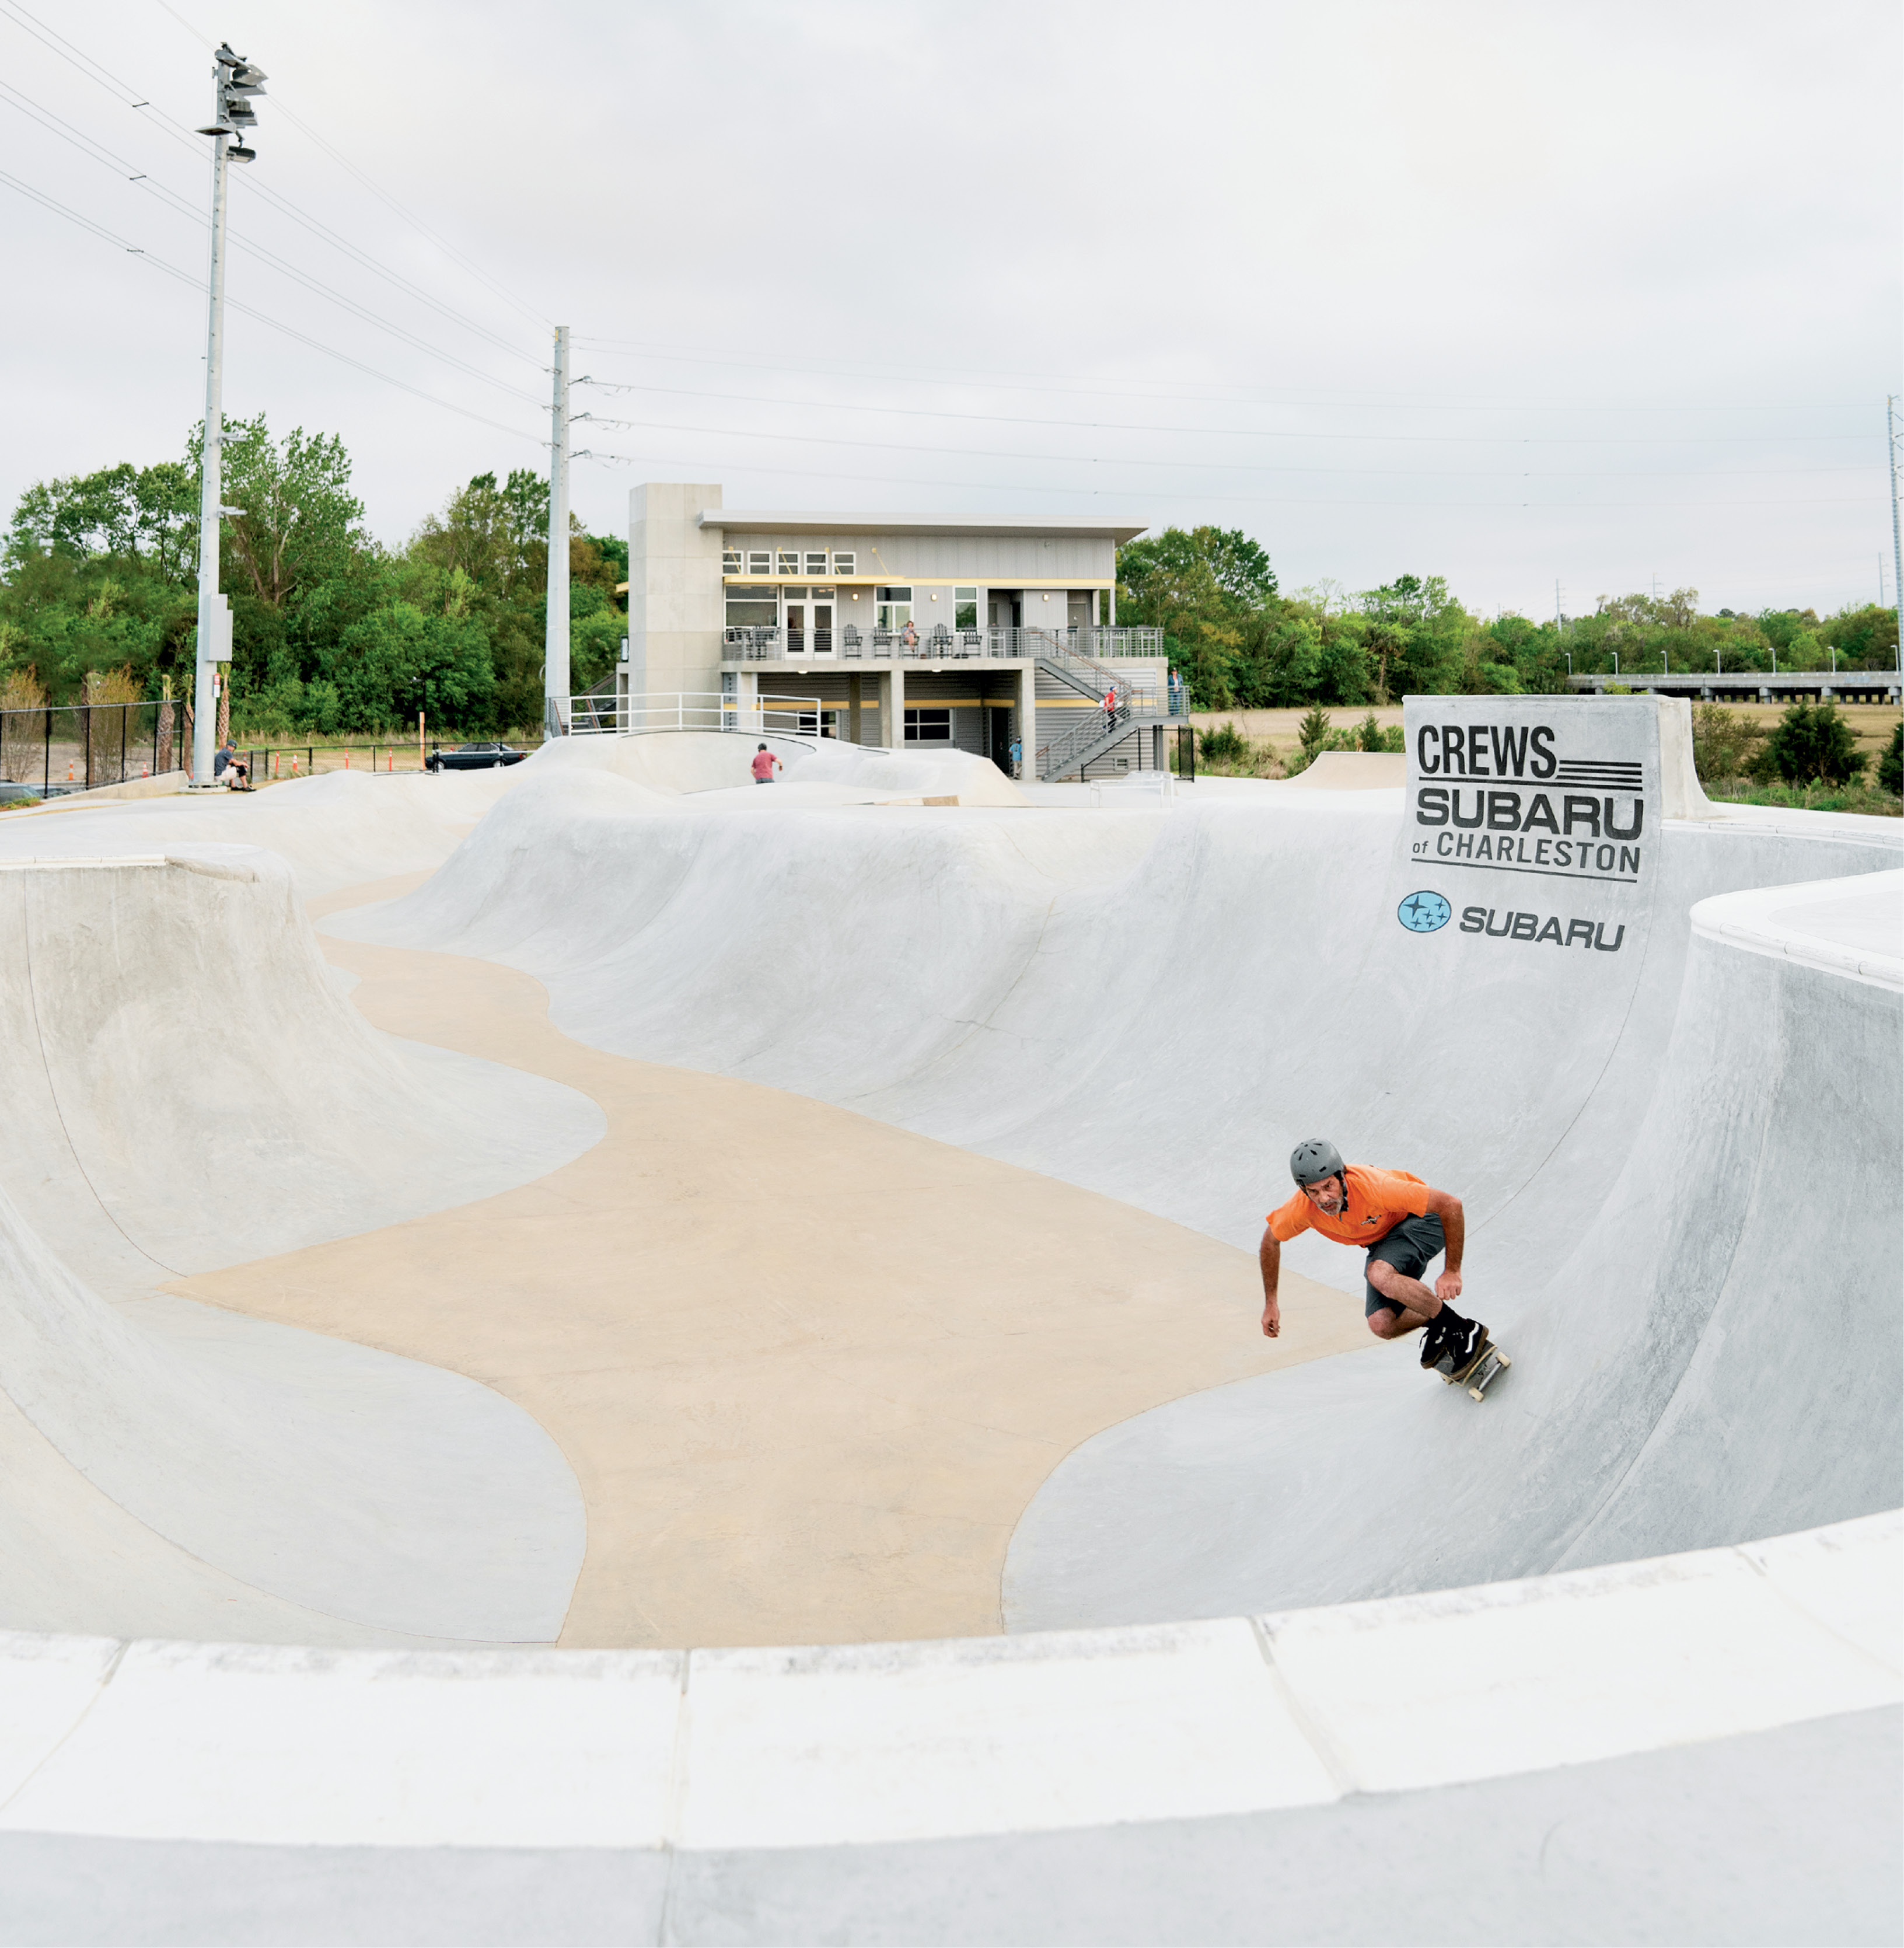 Visitors can take in the action from the viewing deck  off the main building, which houses a small skate shop, concessions,  and restrooms.